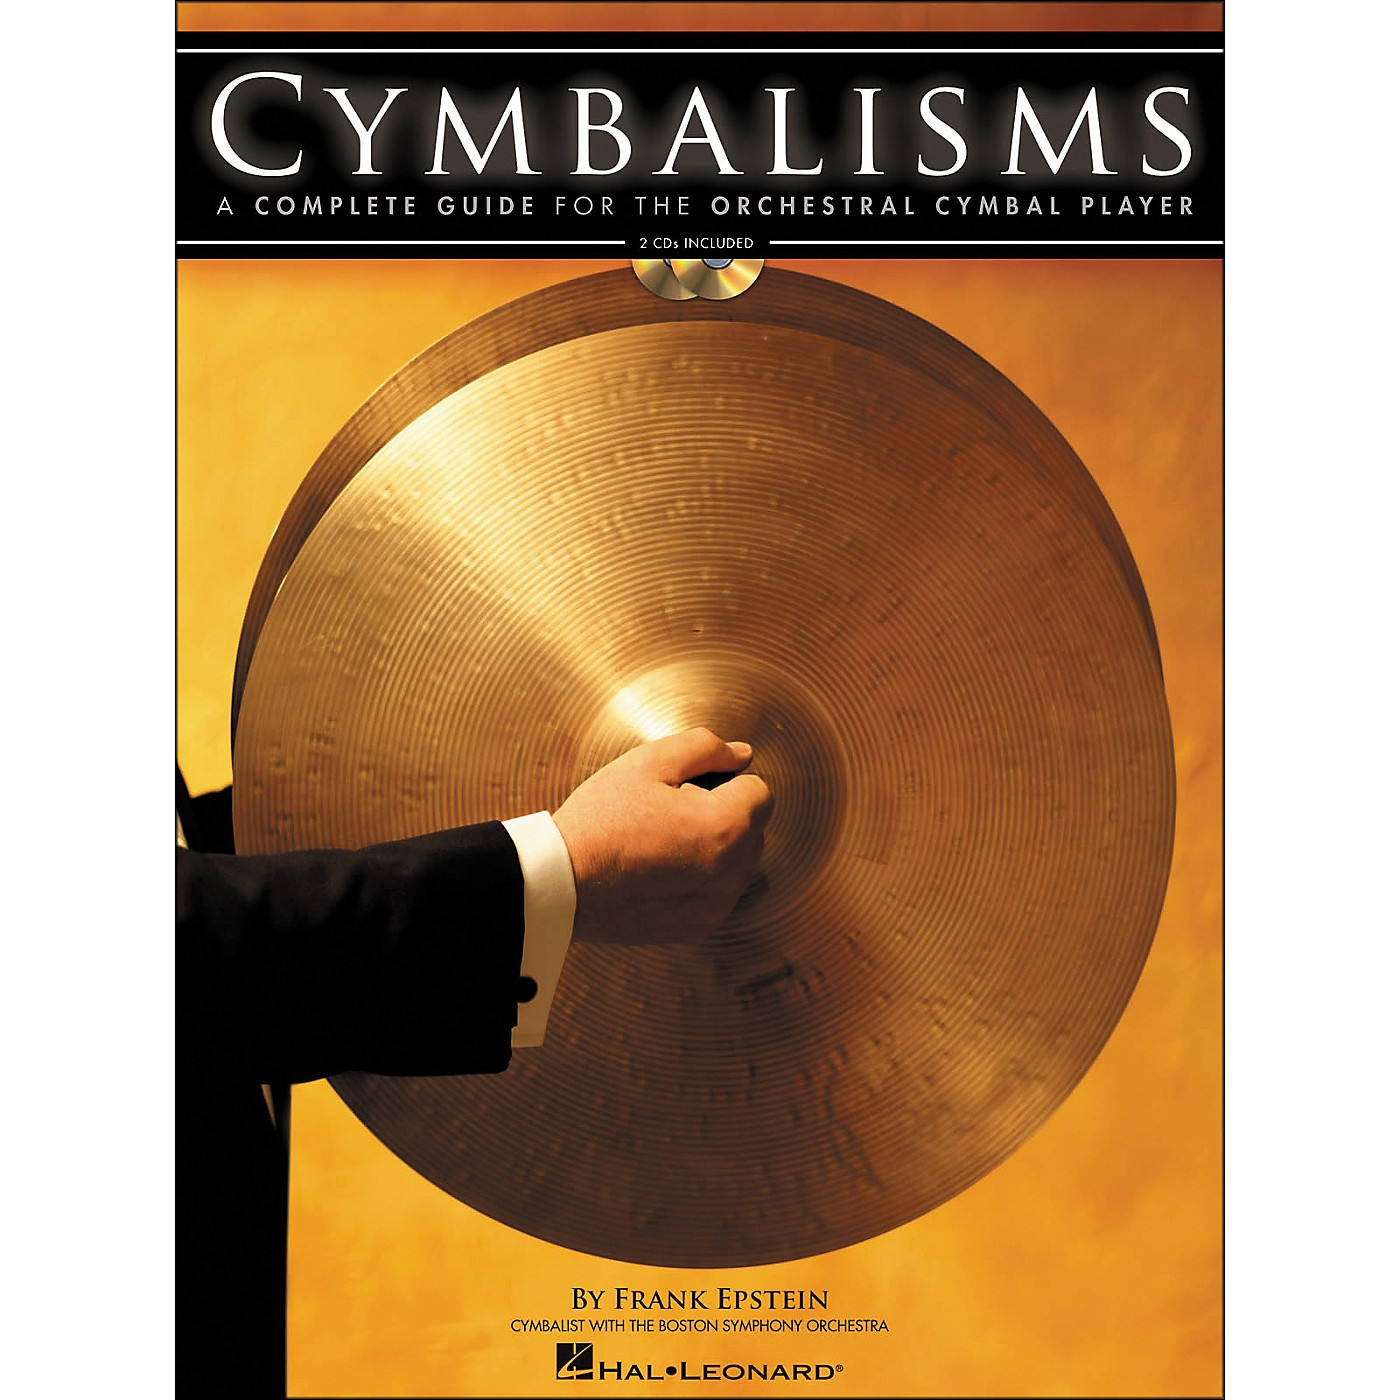 Hal Leonard Cymbalisms: A Complete Guide for The Orchestral Cymbal Player Book/2CD's thumbnail